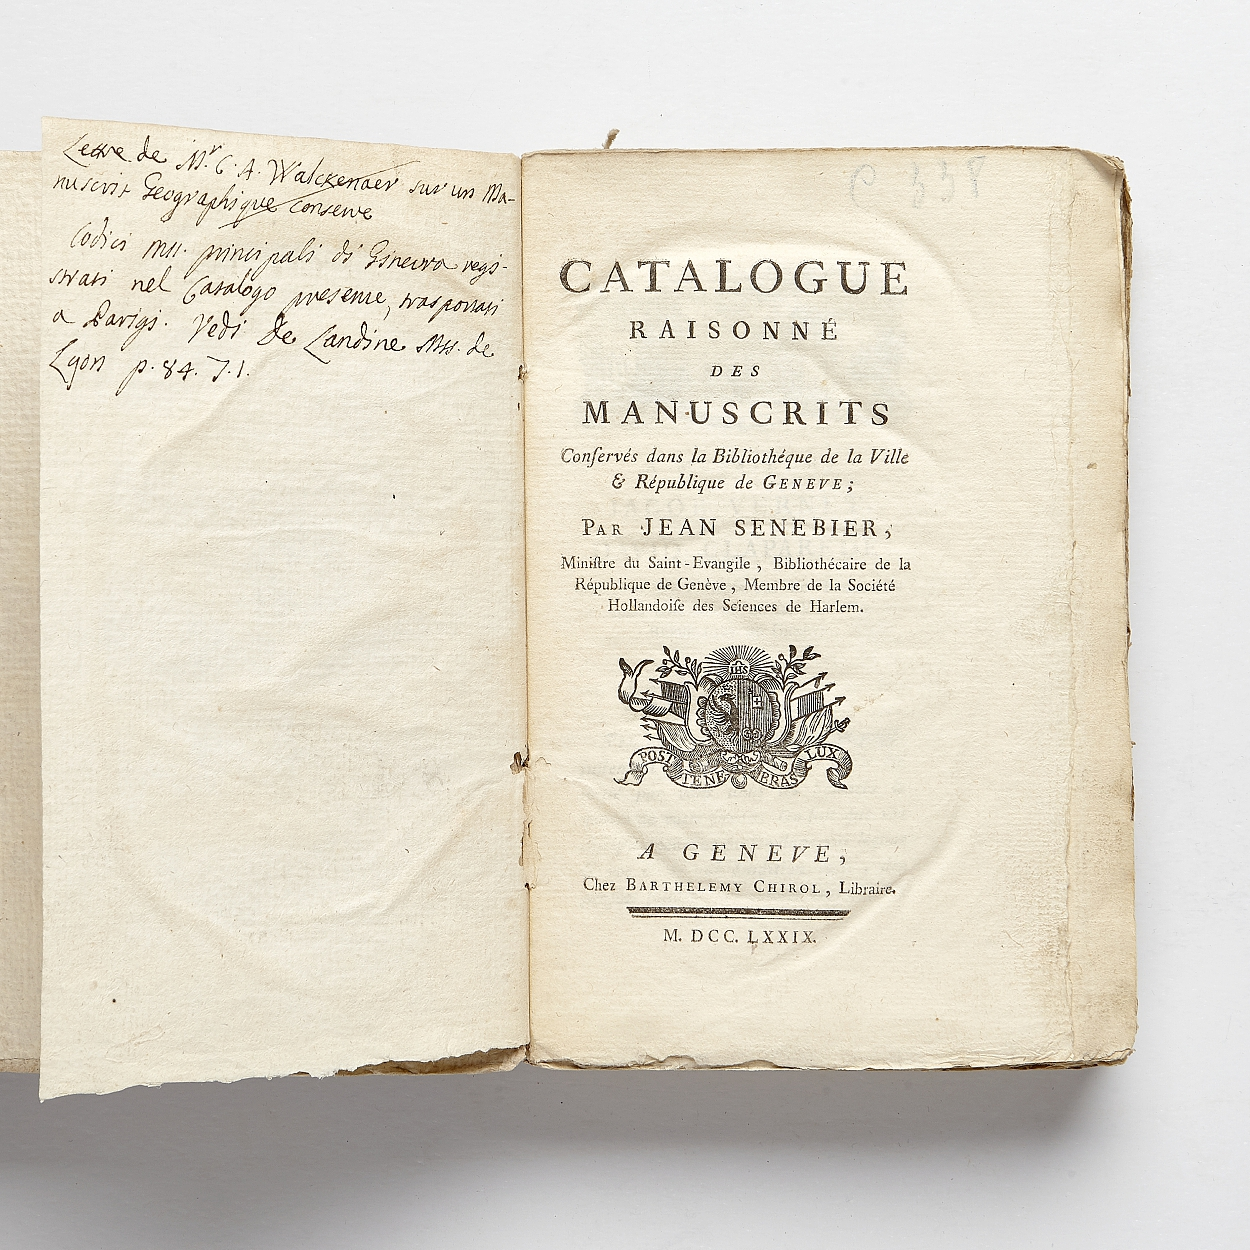 Bibliography of manuscripts in the city of Geneva